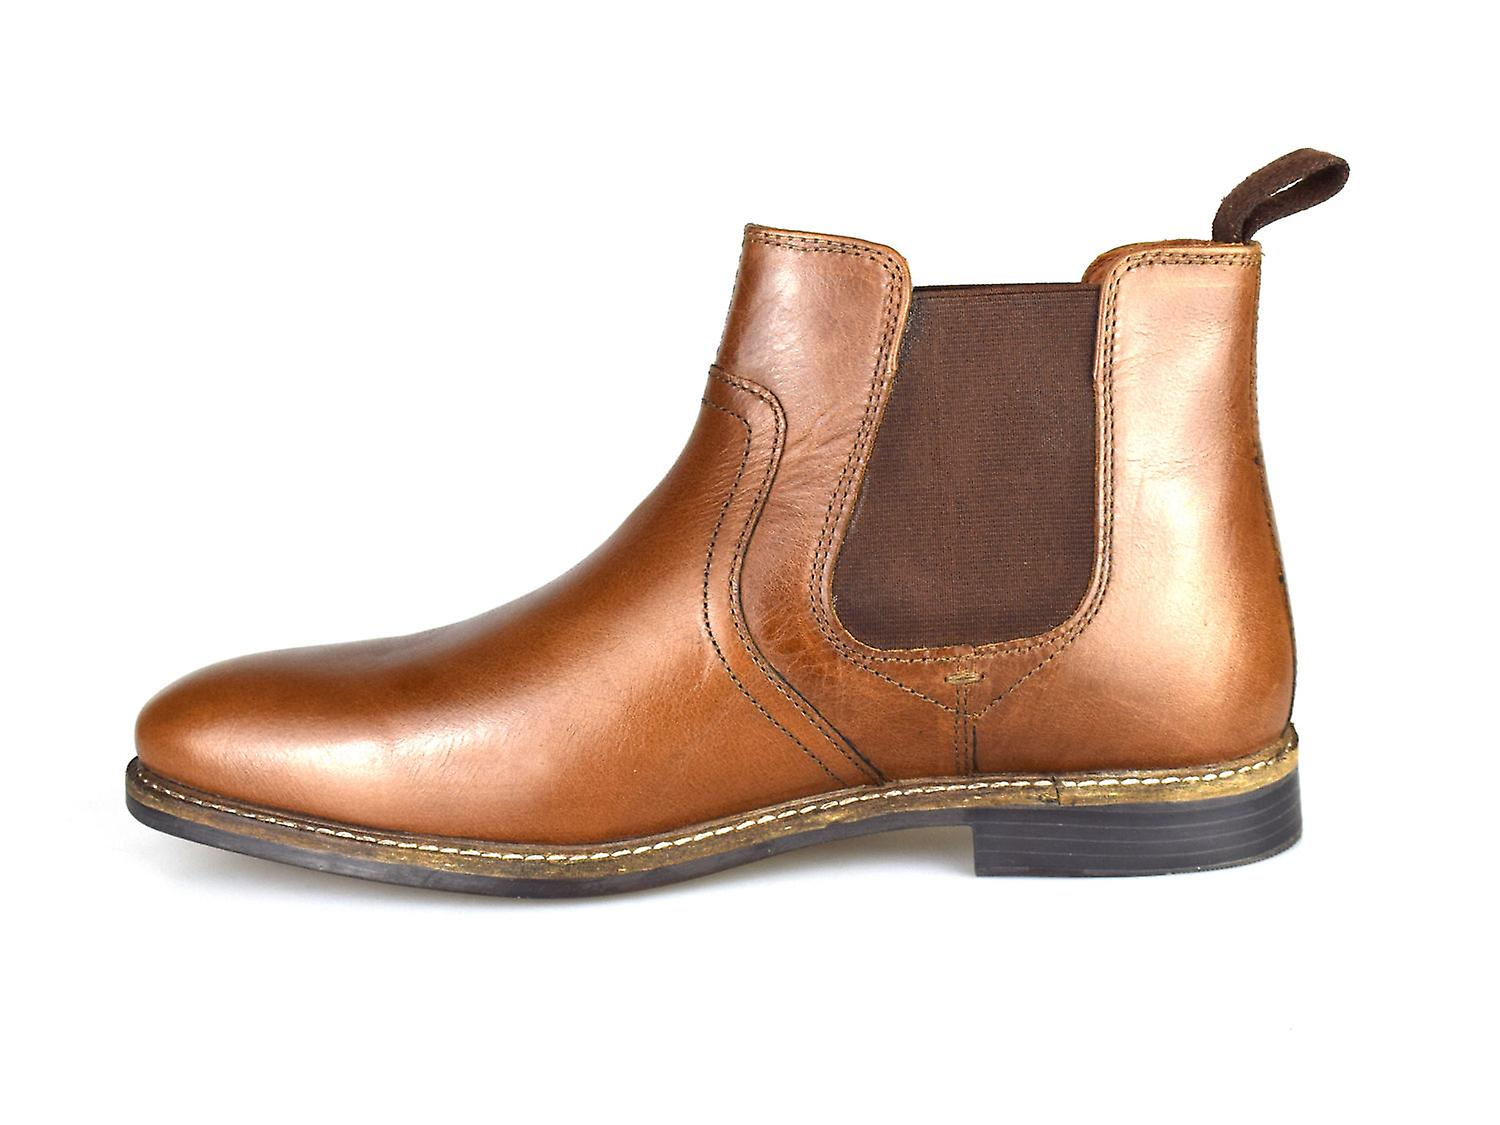 979e80c329f Red Tape Newton Tan Leather Mens Formal Chelsea Boots